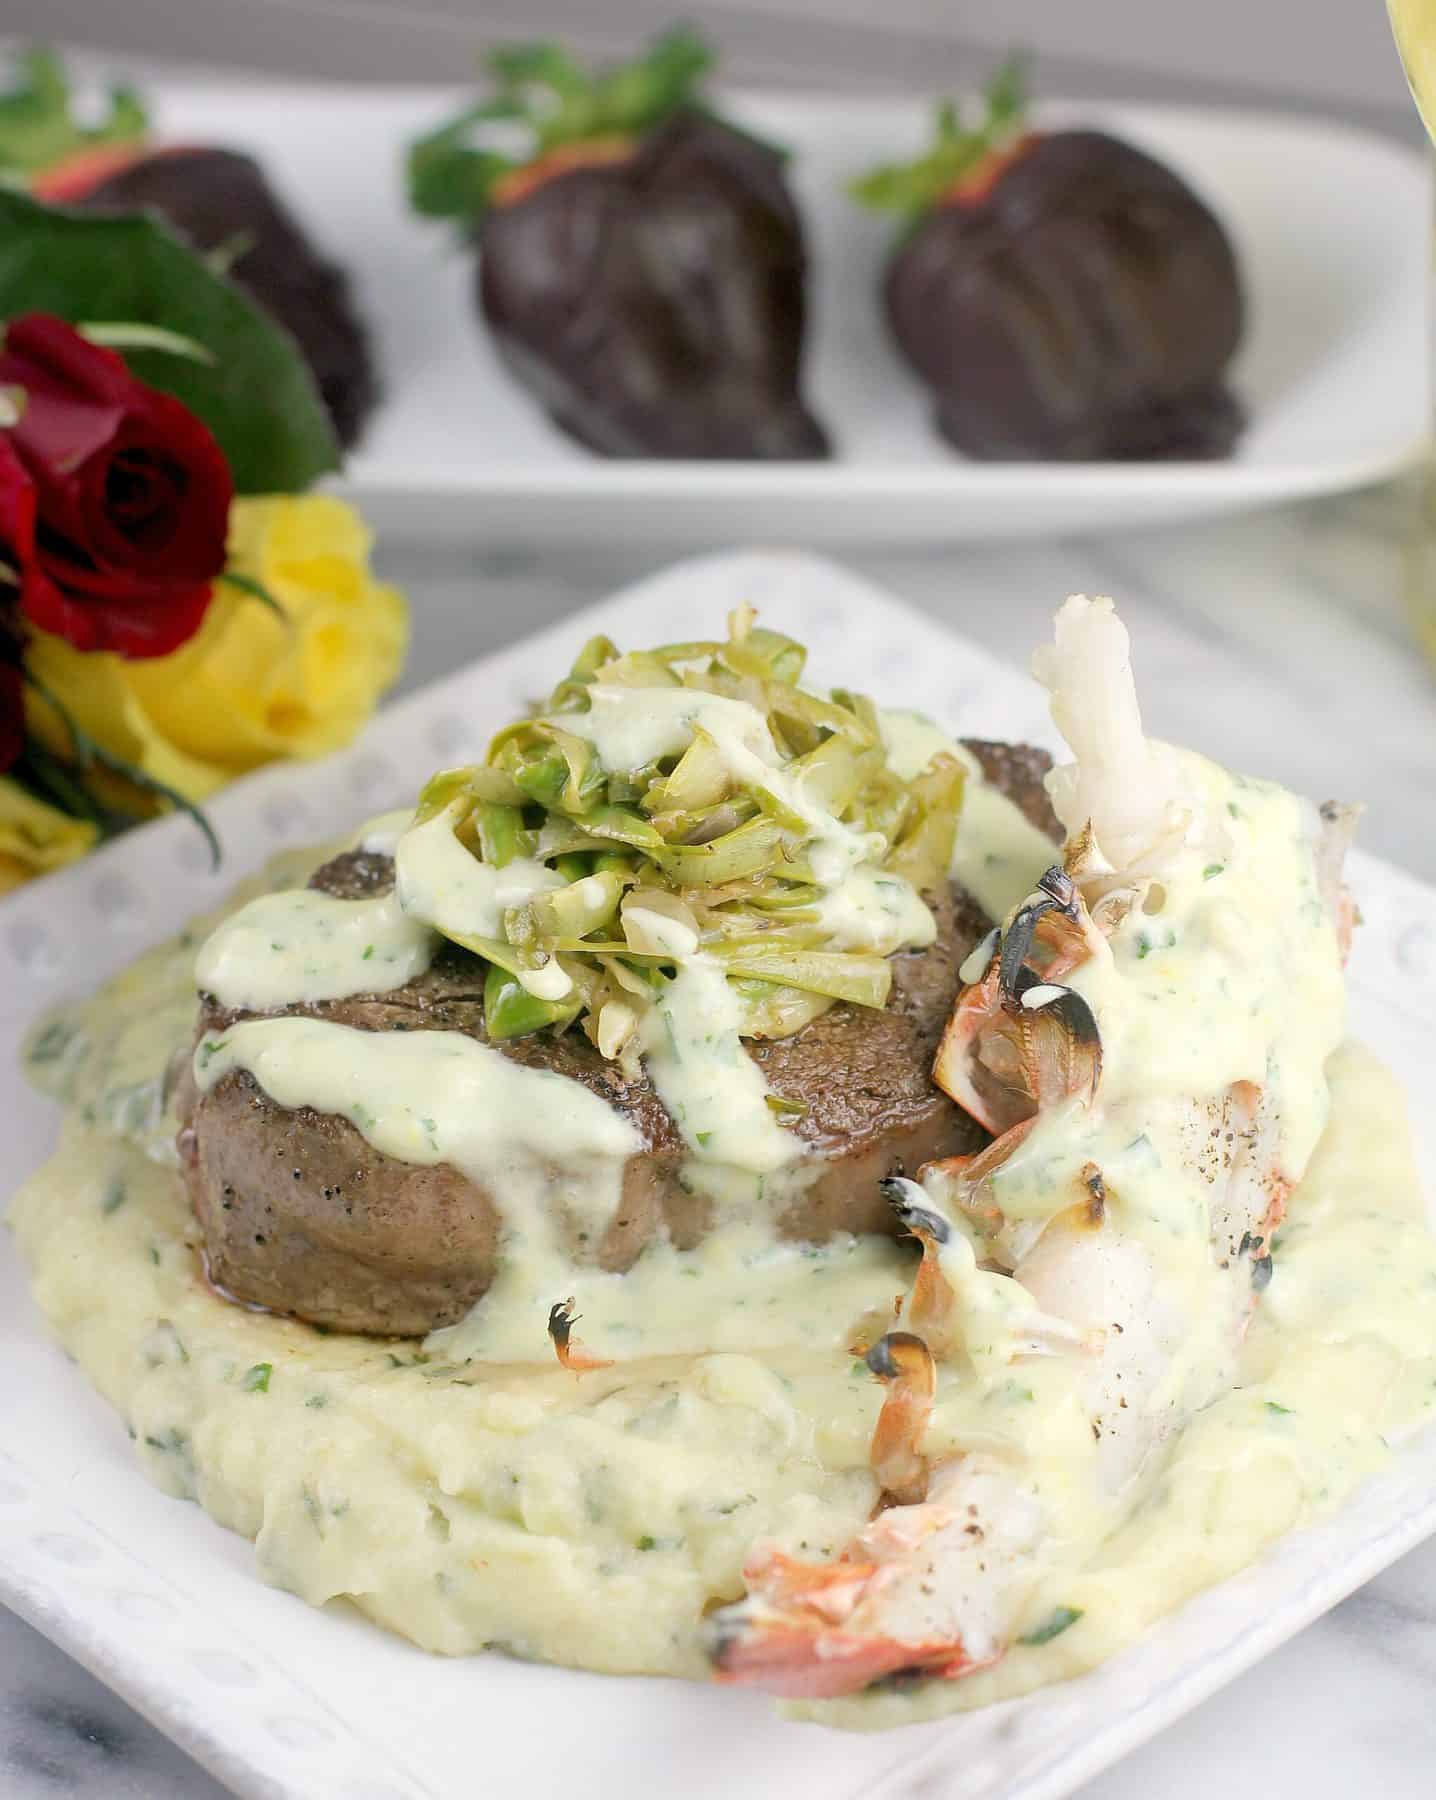 Valentine's Surf and Turf Filet Mignon and Lobster